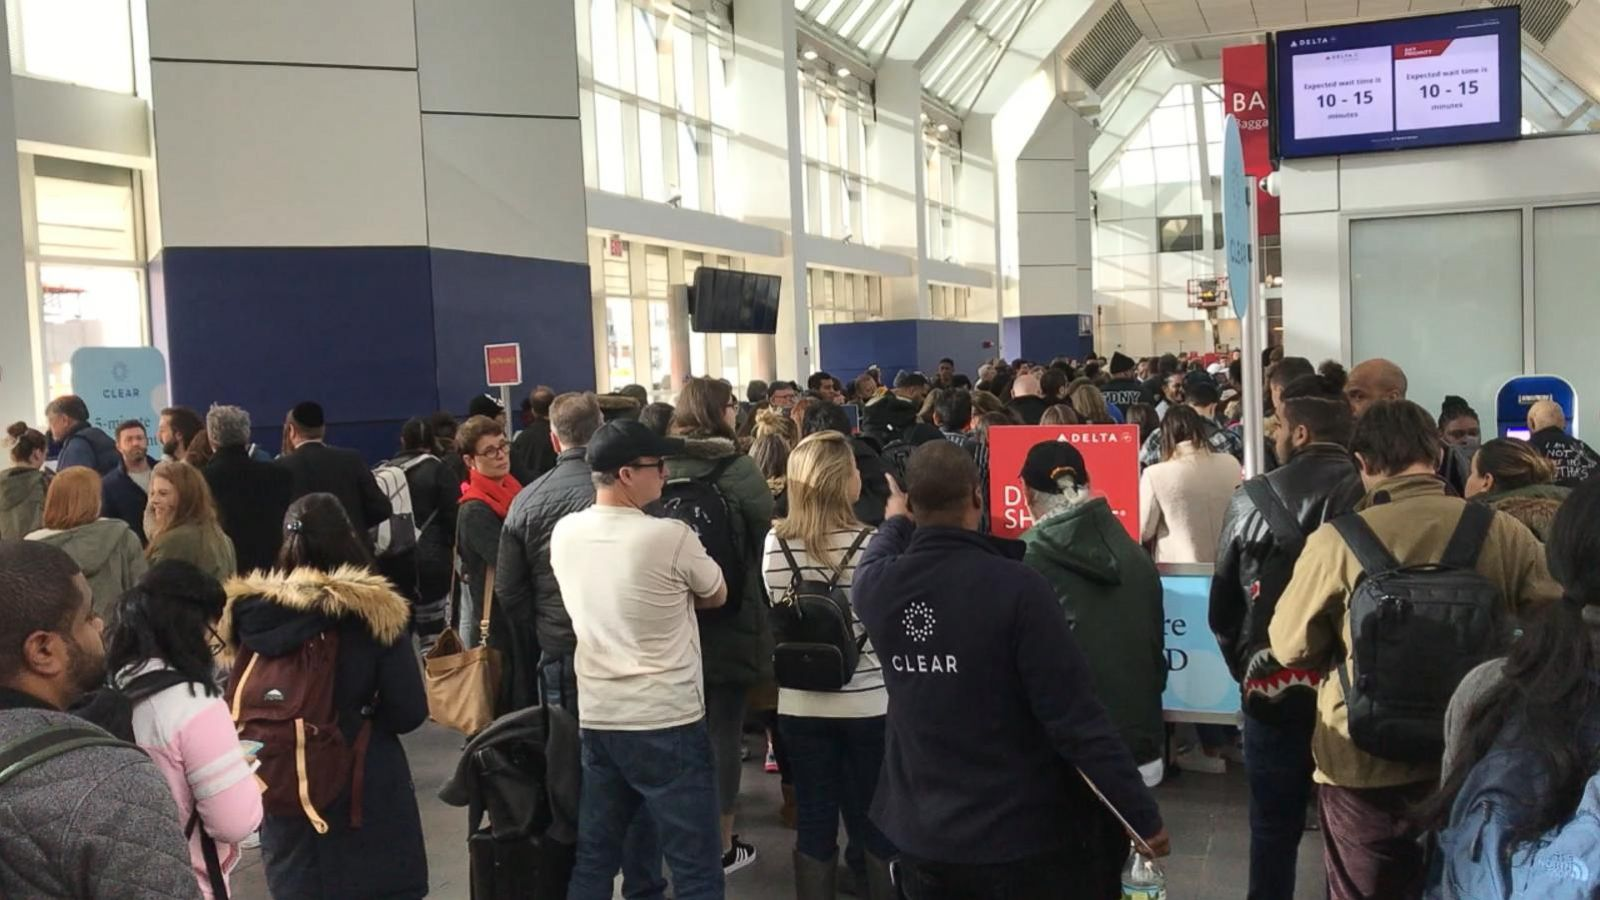 Massive Lines At Nyc Airport Not Caused By Shutdown Officer Callouts Tsa Abc News